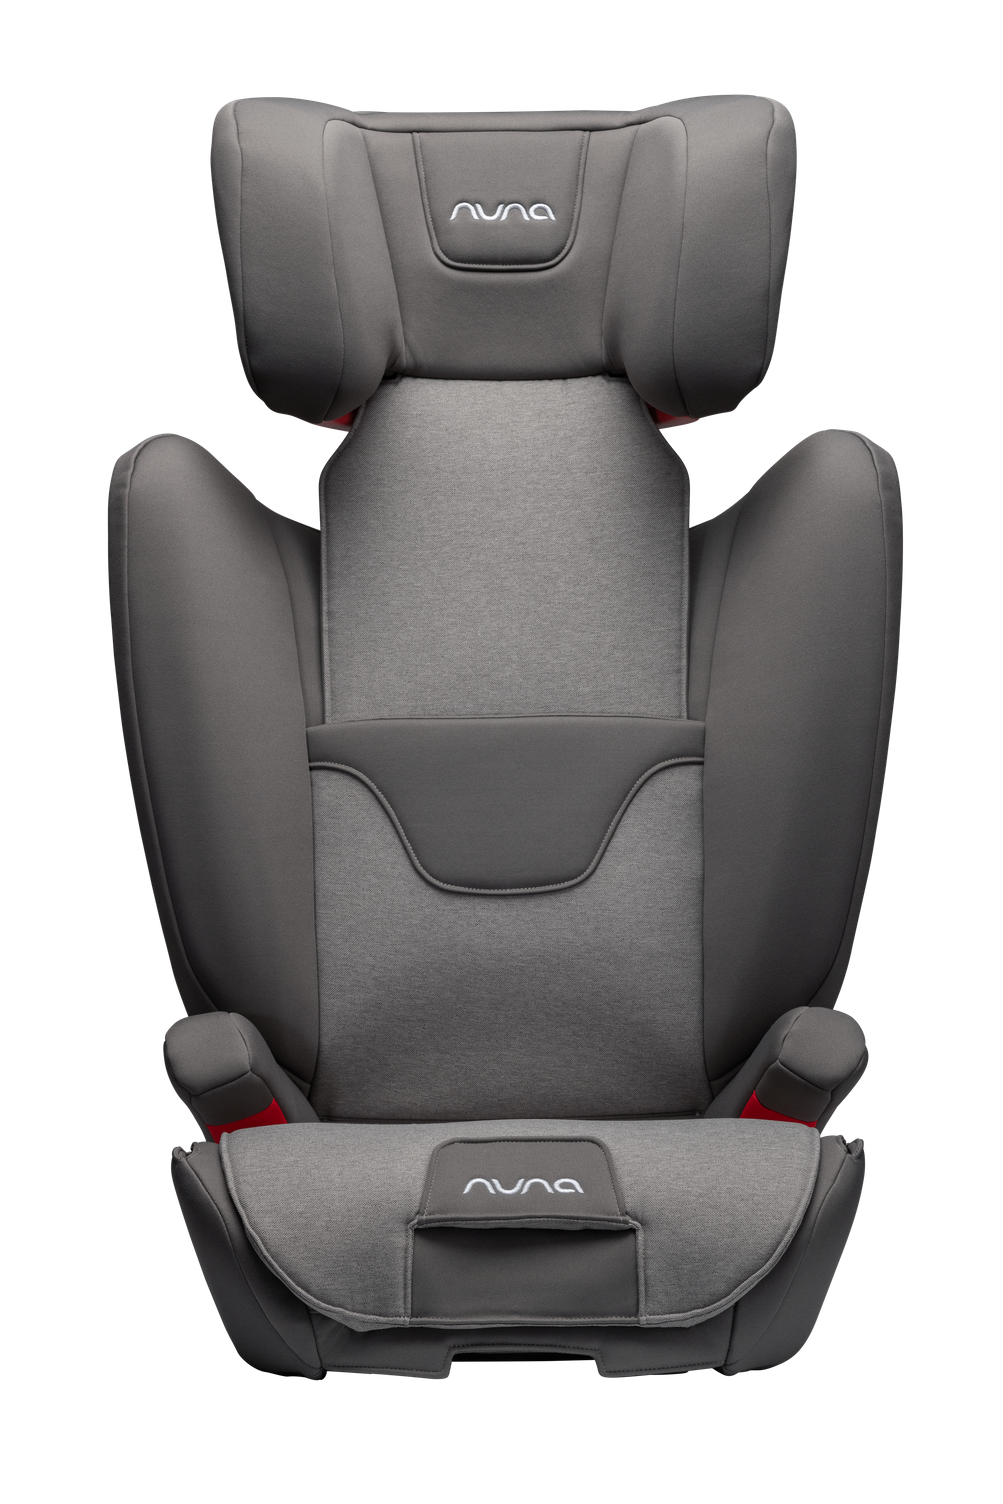 NUNA AACE 2-in-1 Booster Car Seat Front View - Granite | ANB Baby